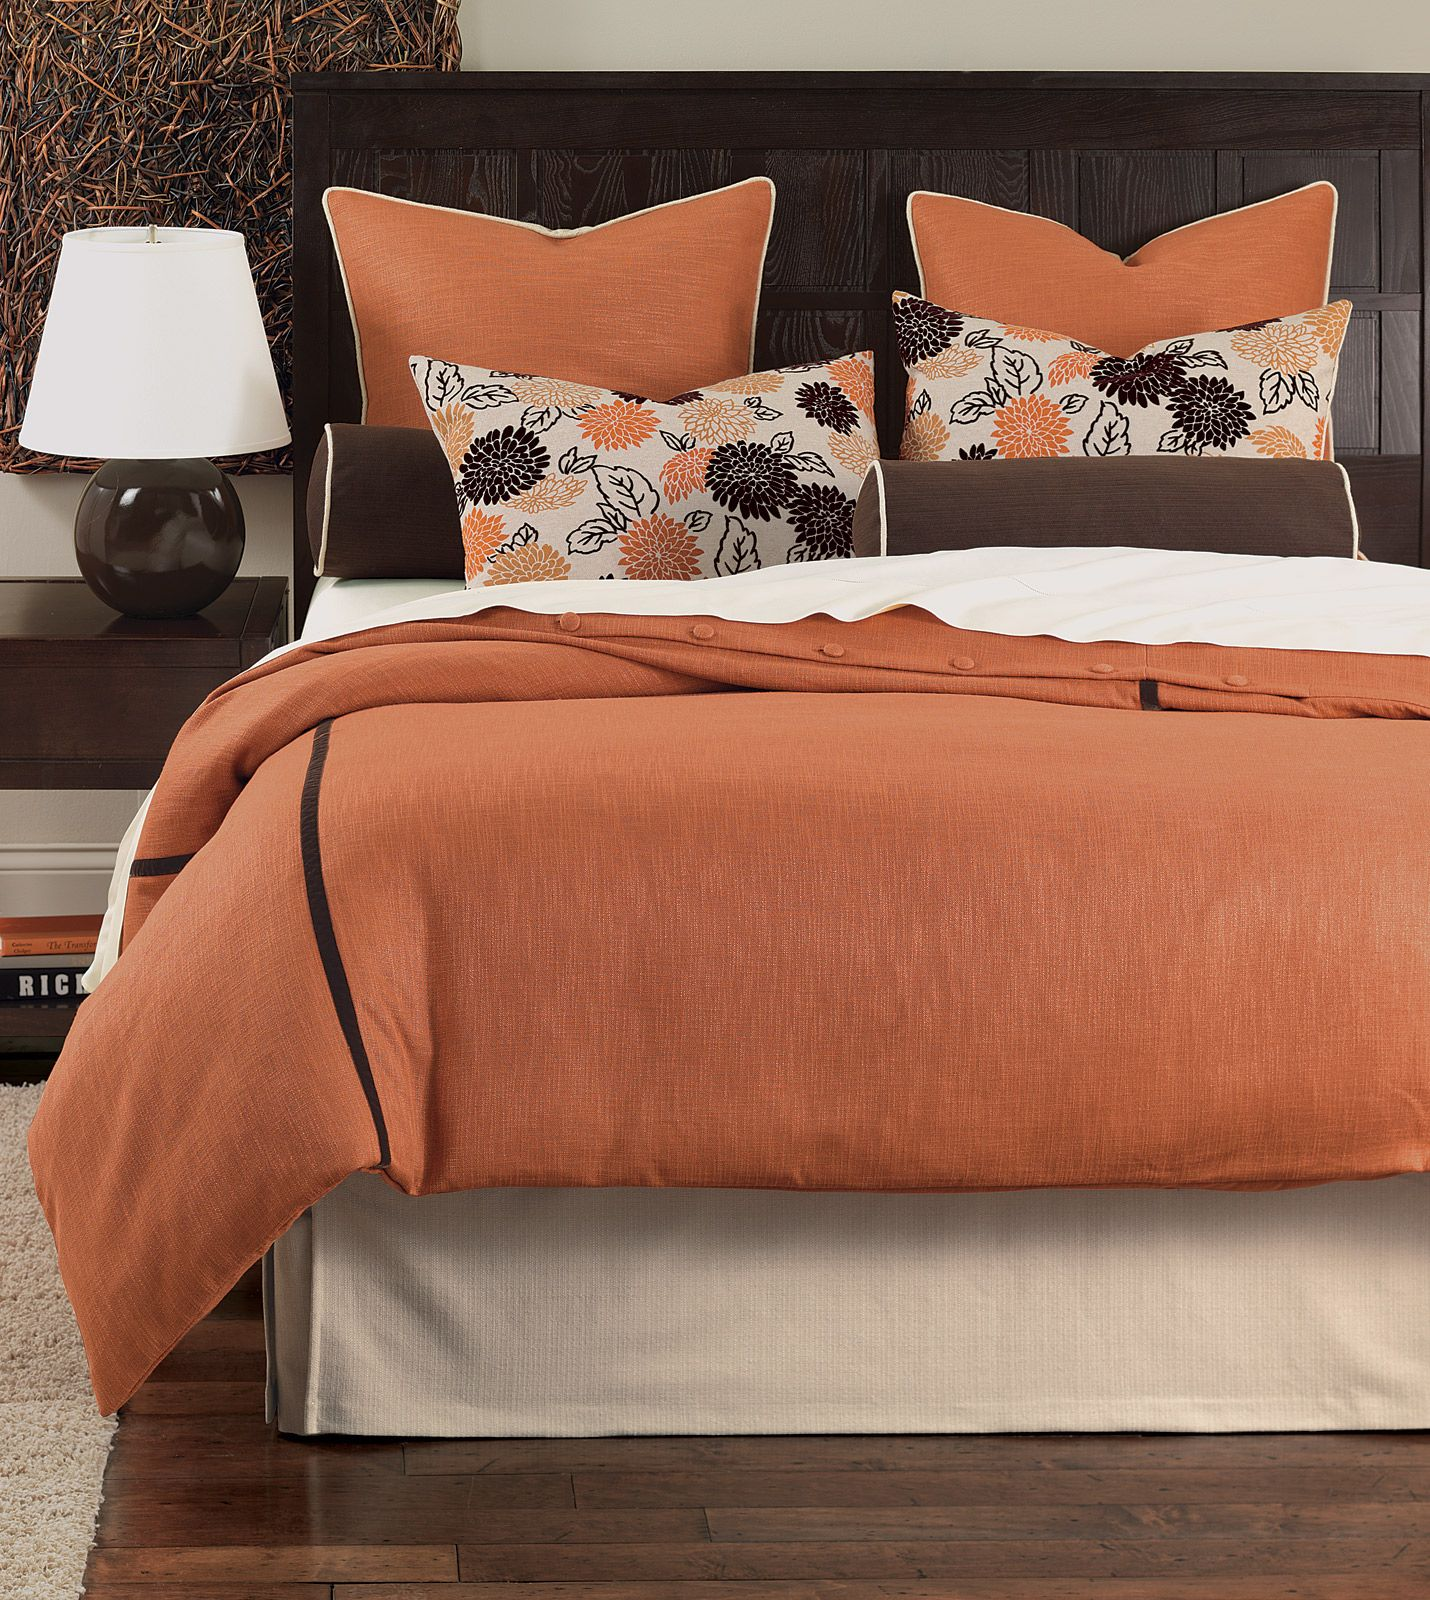 niche luxury bedding by eastern accents  reeves collection  - niche luxury bedding by eastern accents  reeves collection